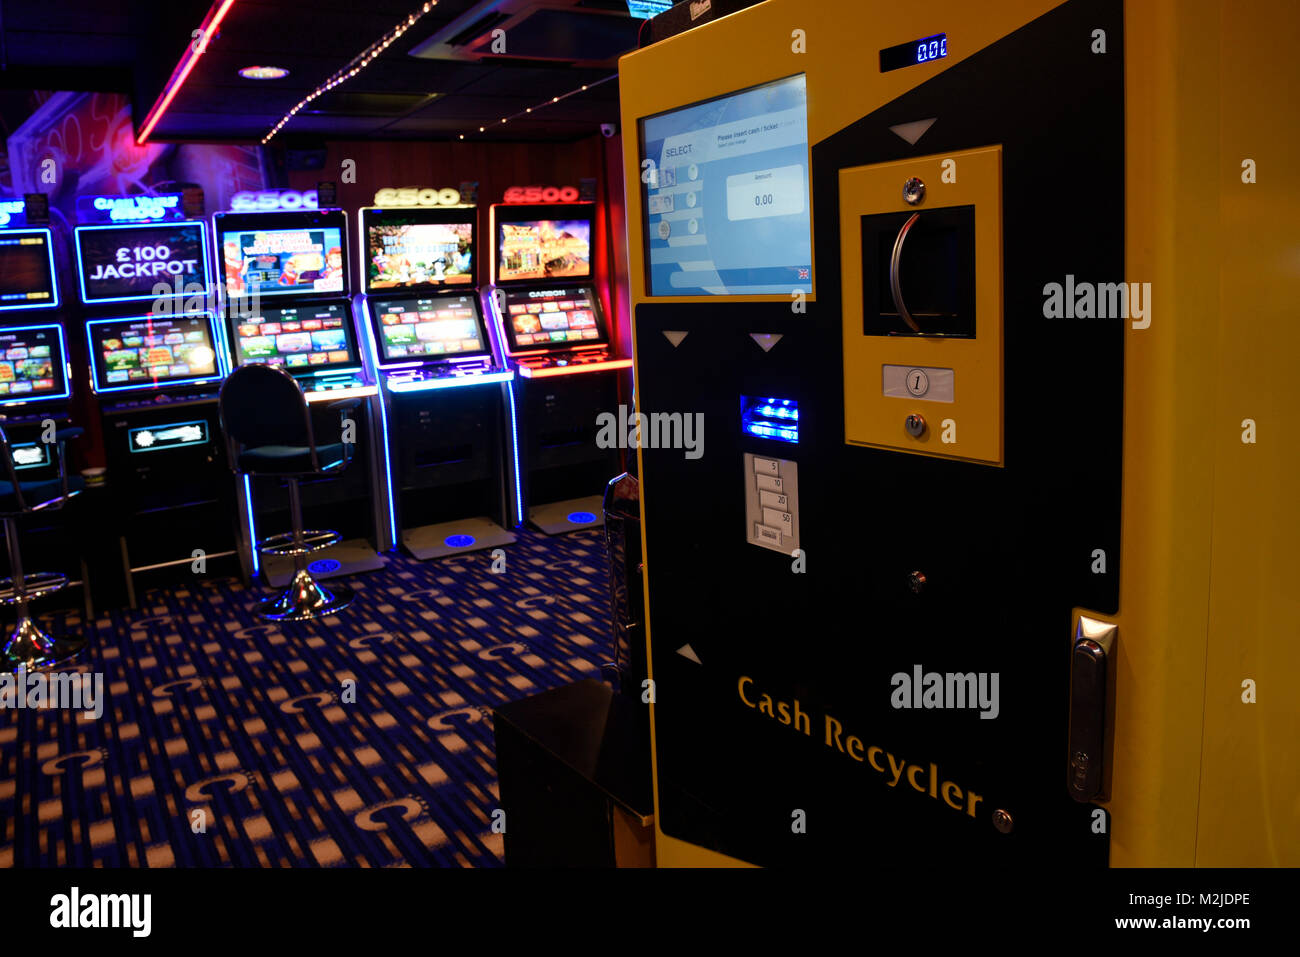 Fruit machines, Fixed Odds Betting Terminals, gambling machines, slot machines in amusement arcade UK Stock Photo